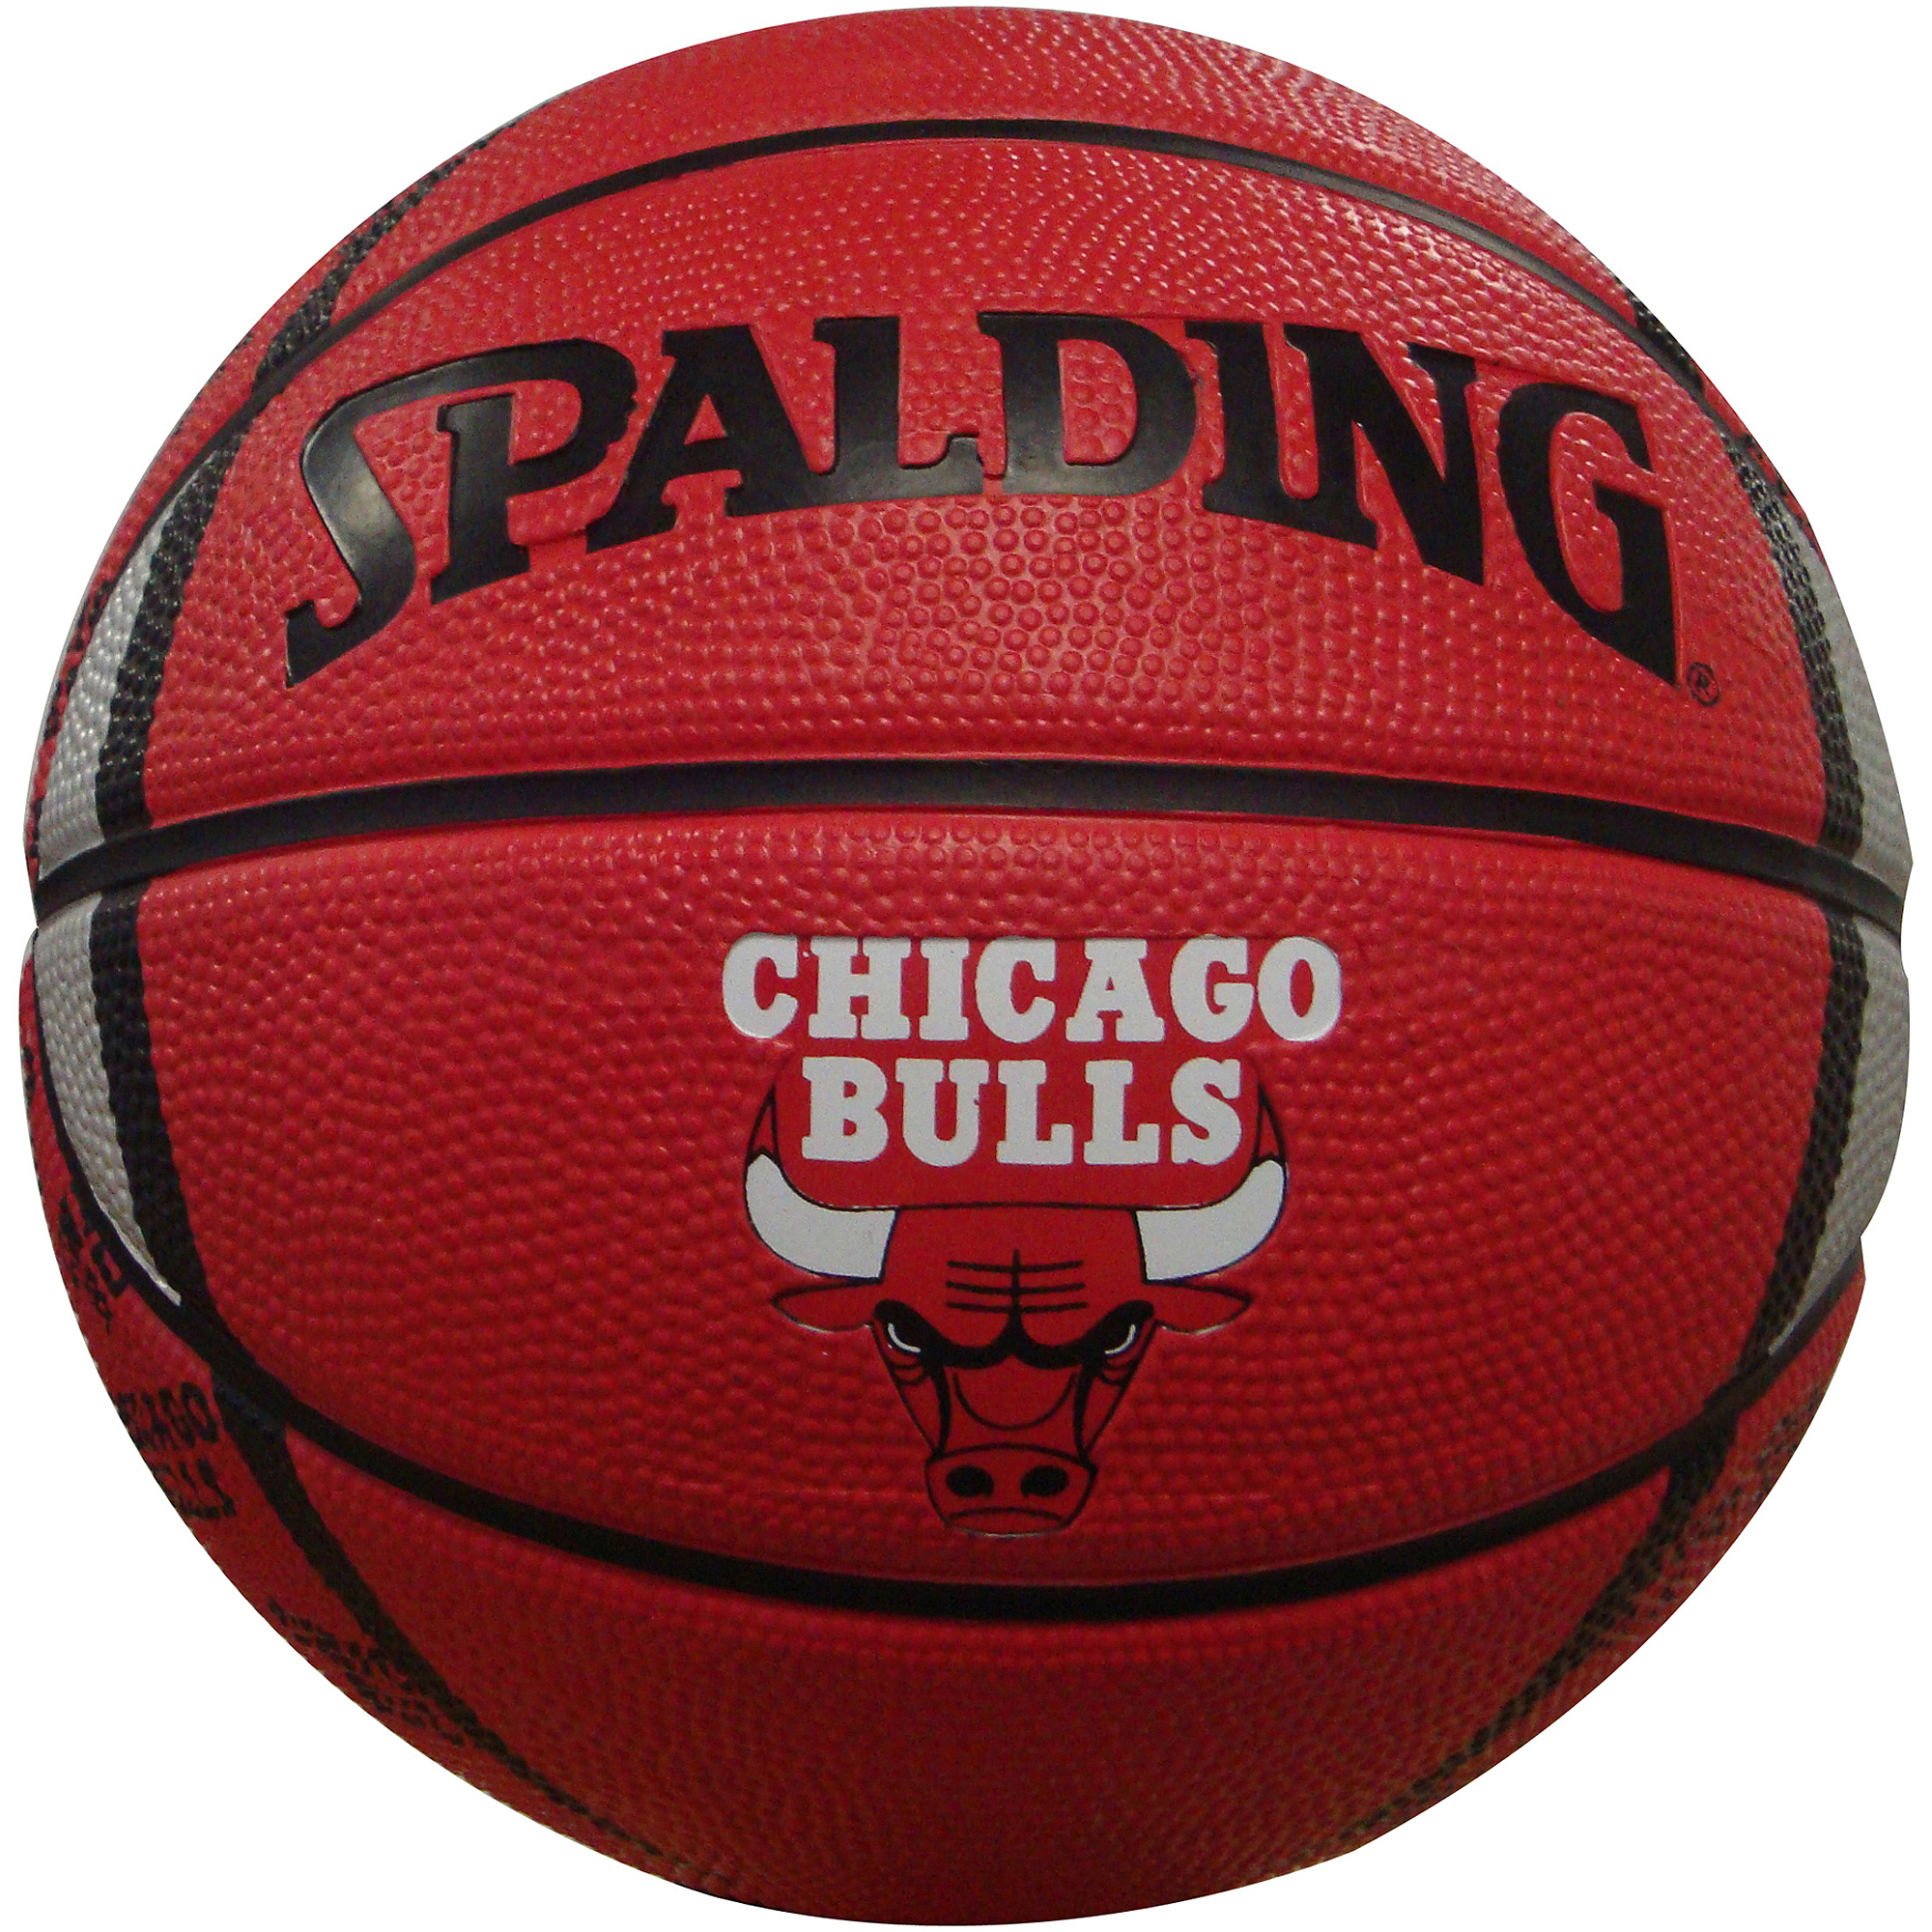 "Spalding NBA 7"" Mini Basketball, Chicago Bulls"